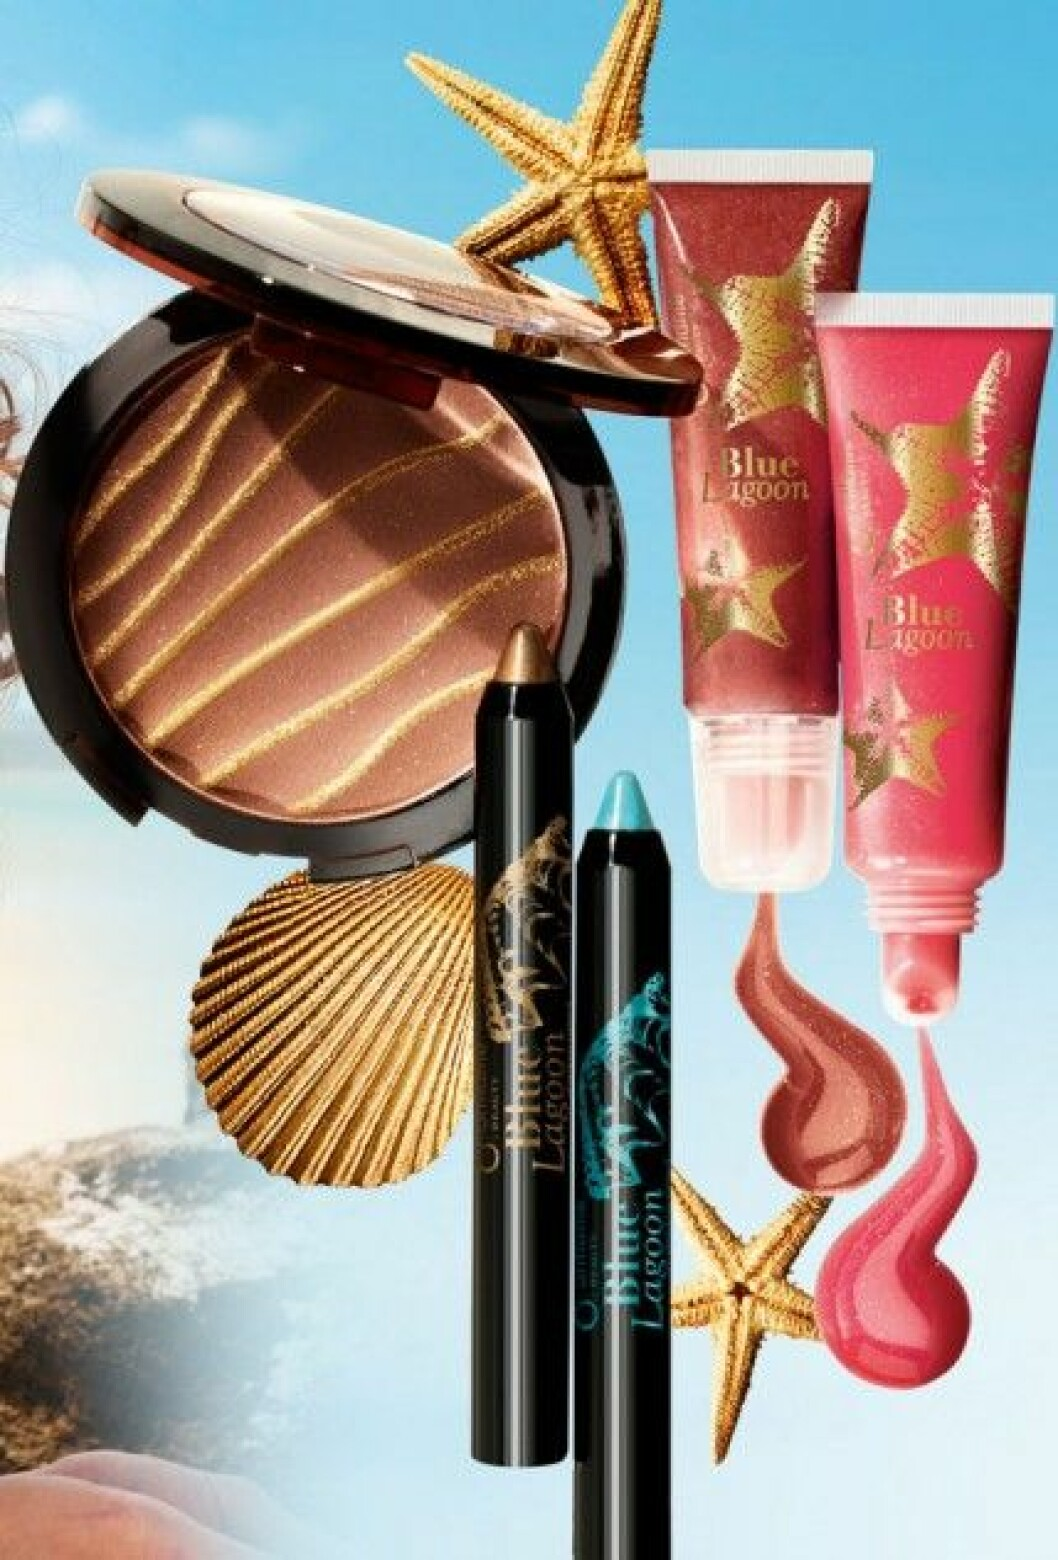 Blue Lagoon by Jonas Wramell for Oriflame.